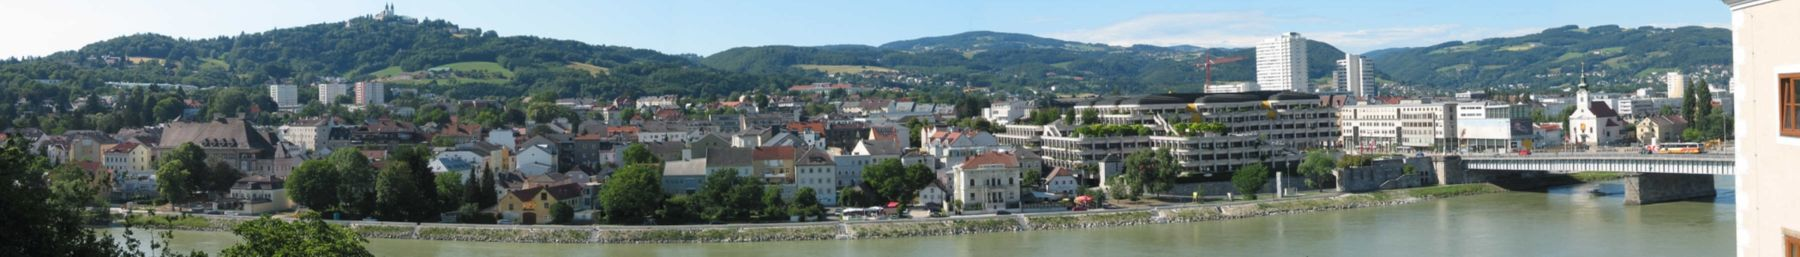 Panoramic view of Linz and Pöstlingberg